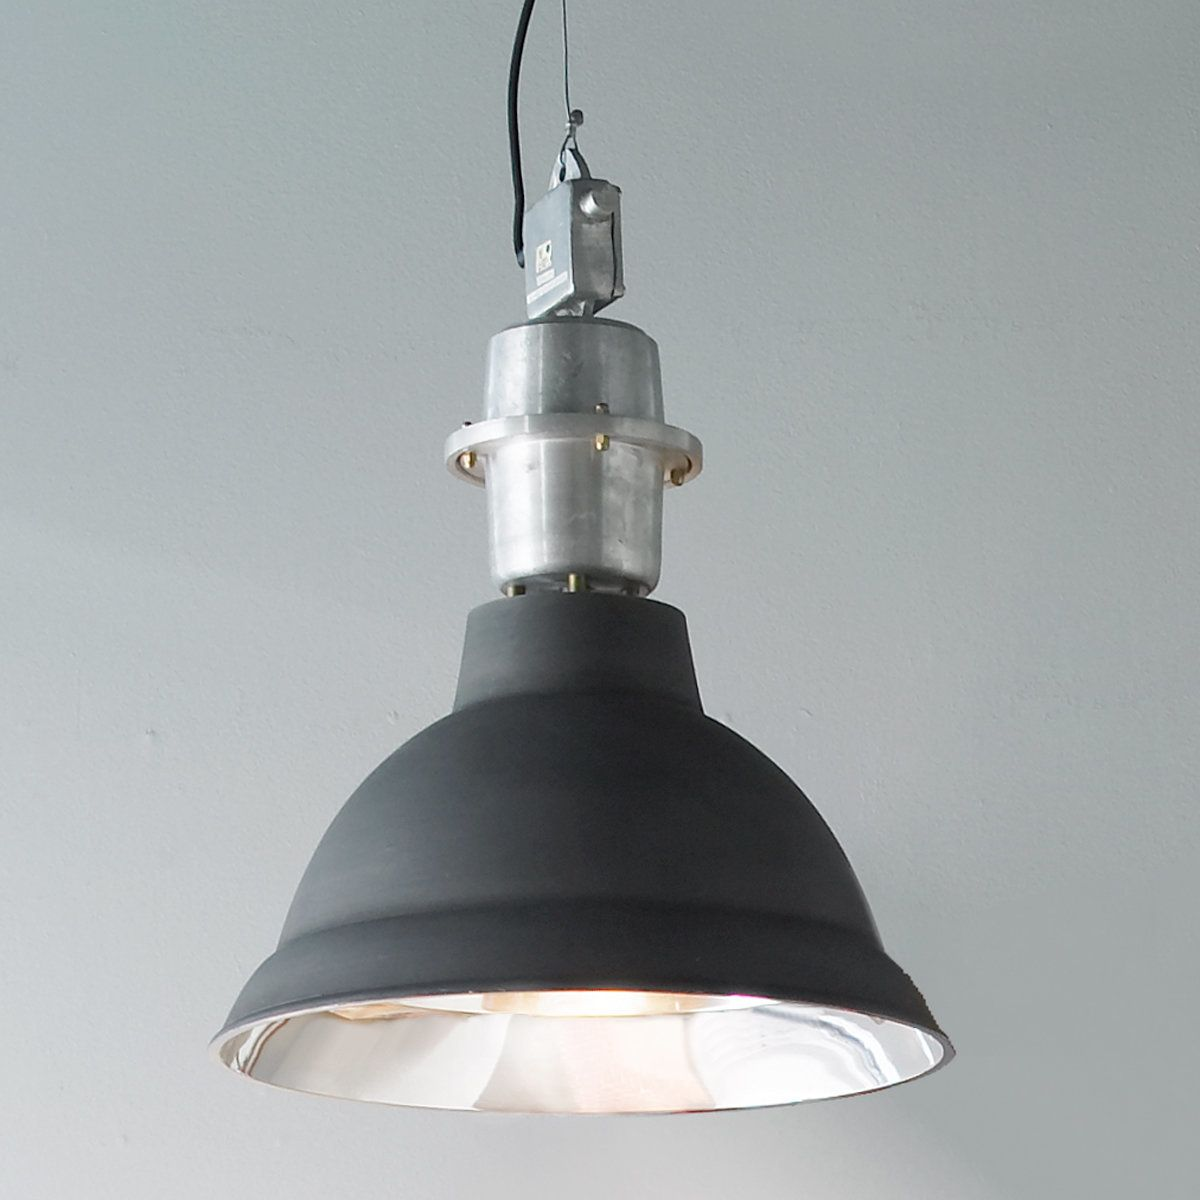 Large Industrial Warehouse Pendant Light Zinc Industrial Pendant